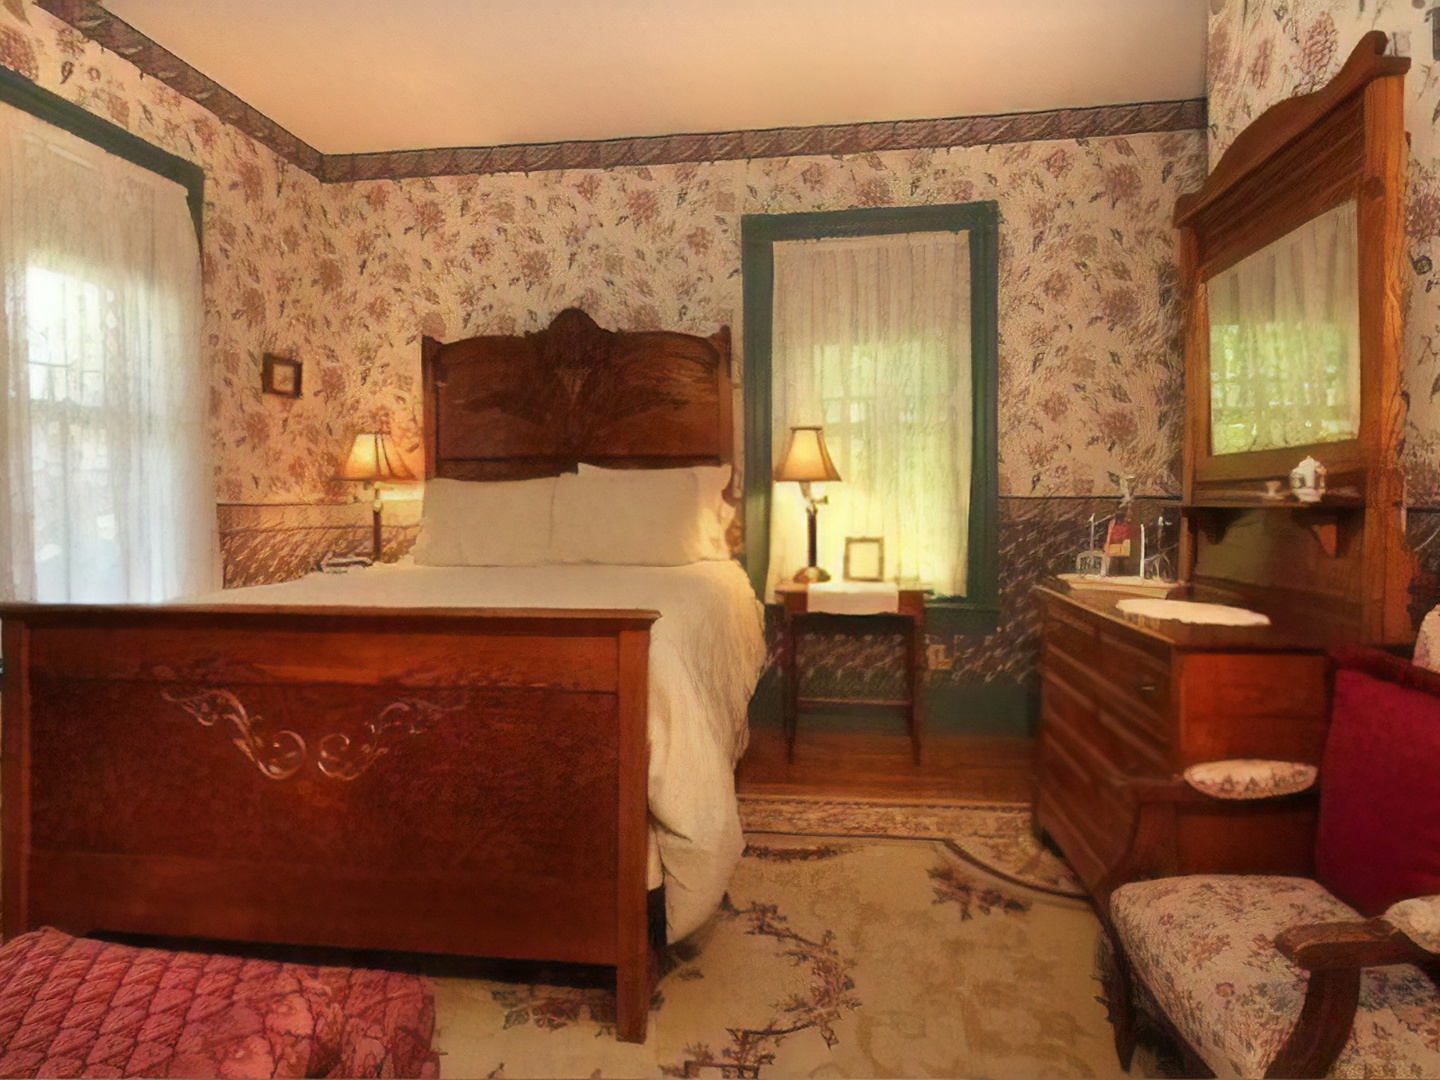 A bedroom with a bed and a fireplace at Manor House Inn.